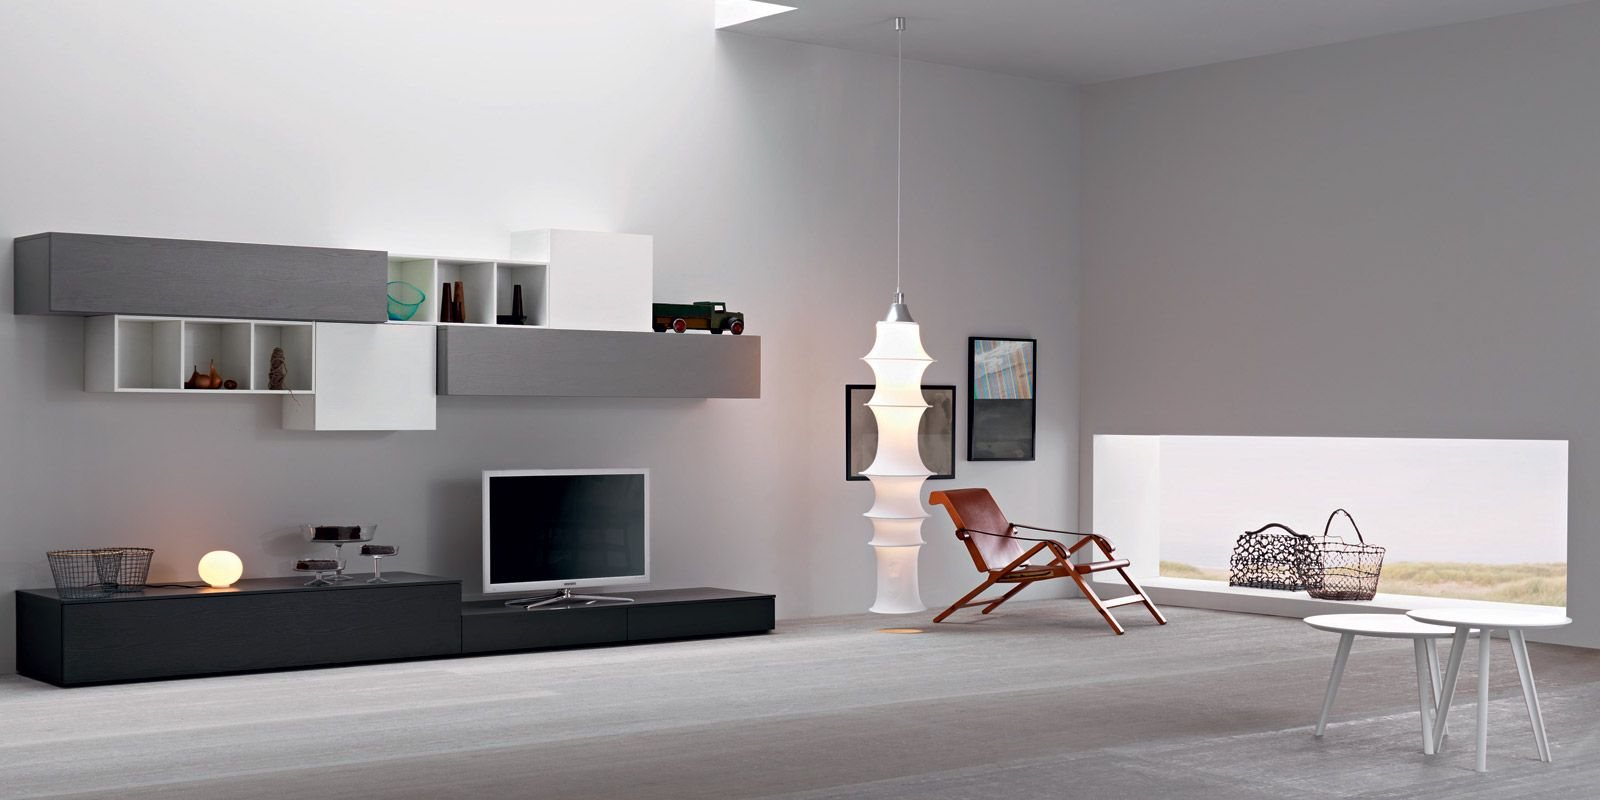 Affianco wall system by Sangiacomo | spaces of interest | Pinterest ...